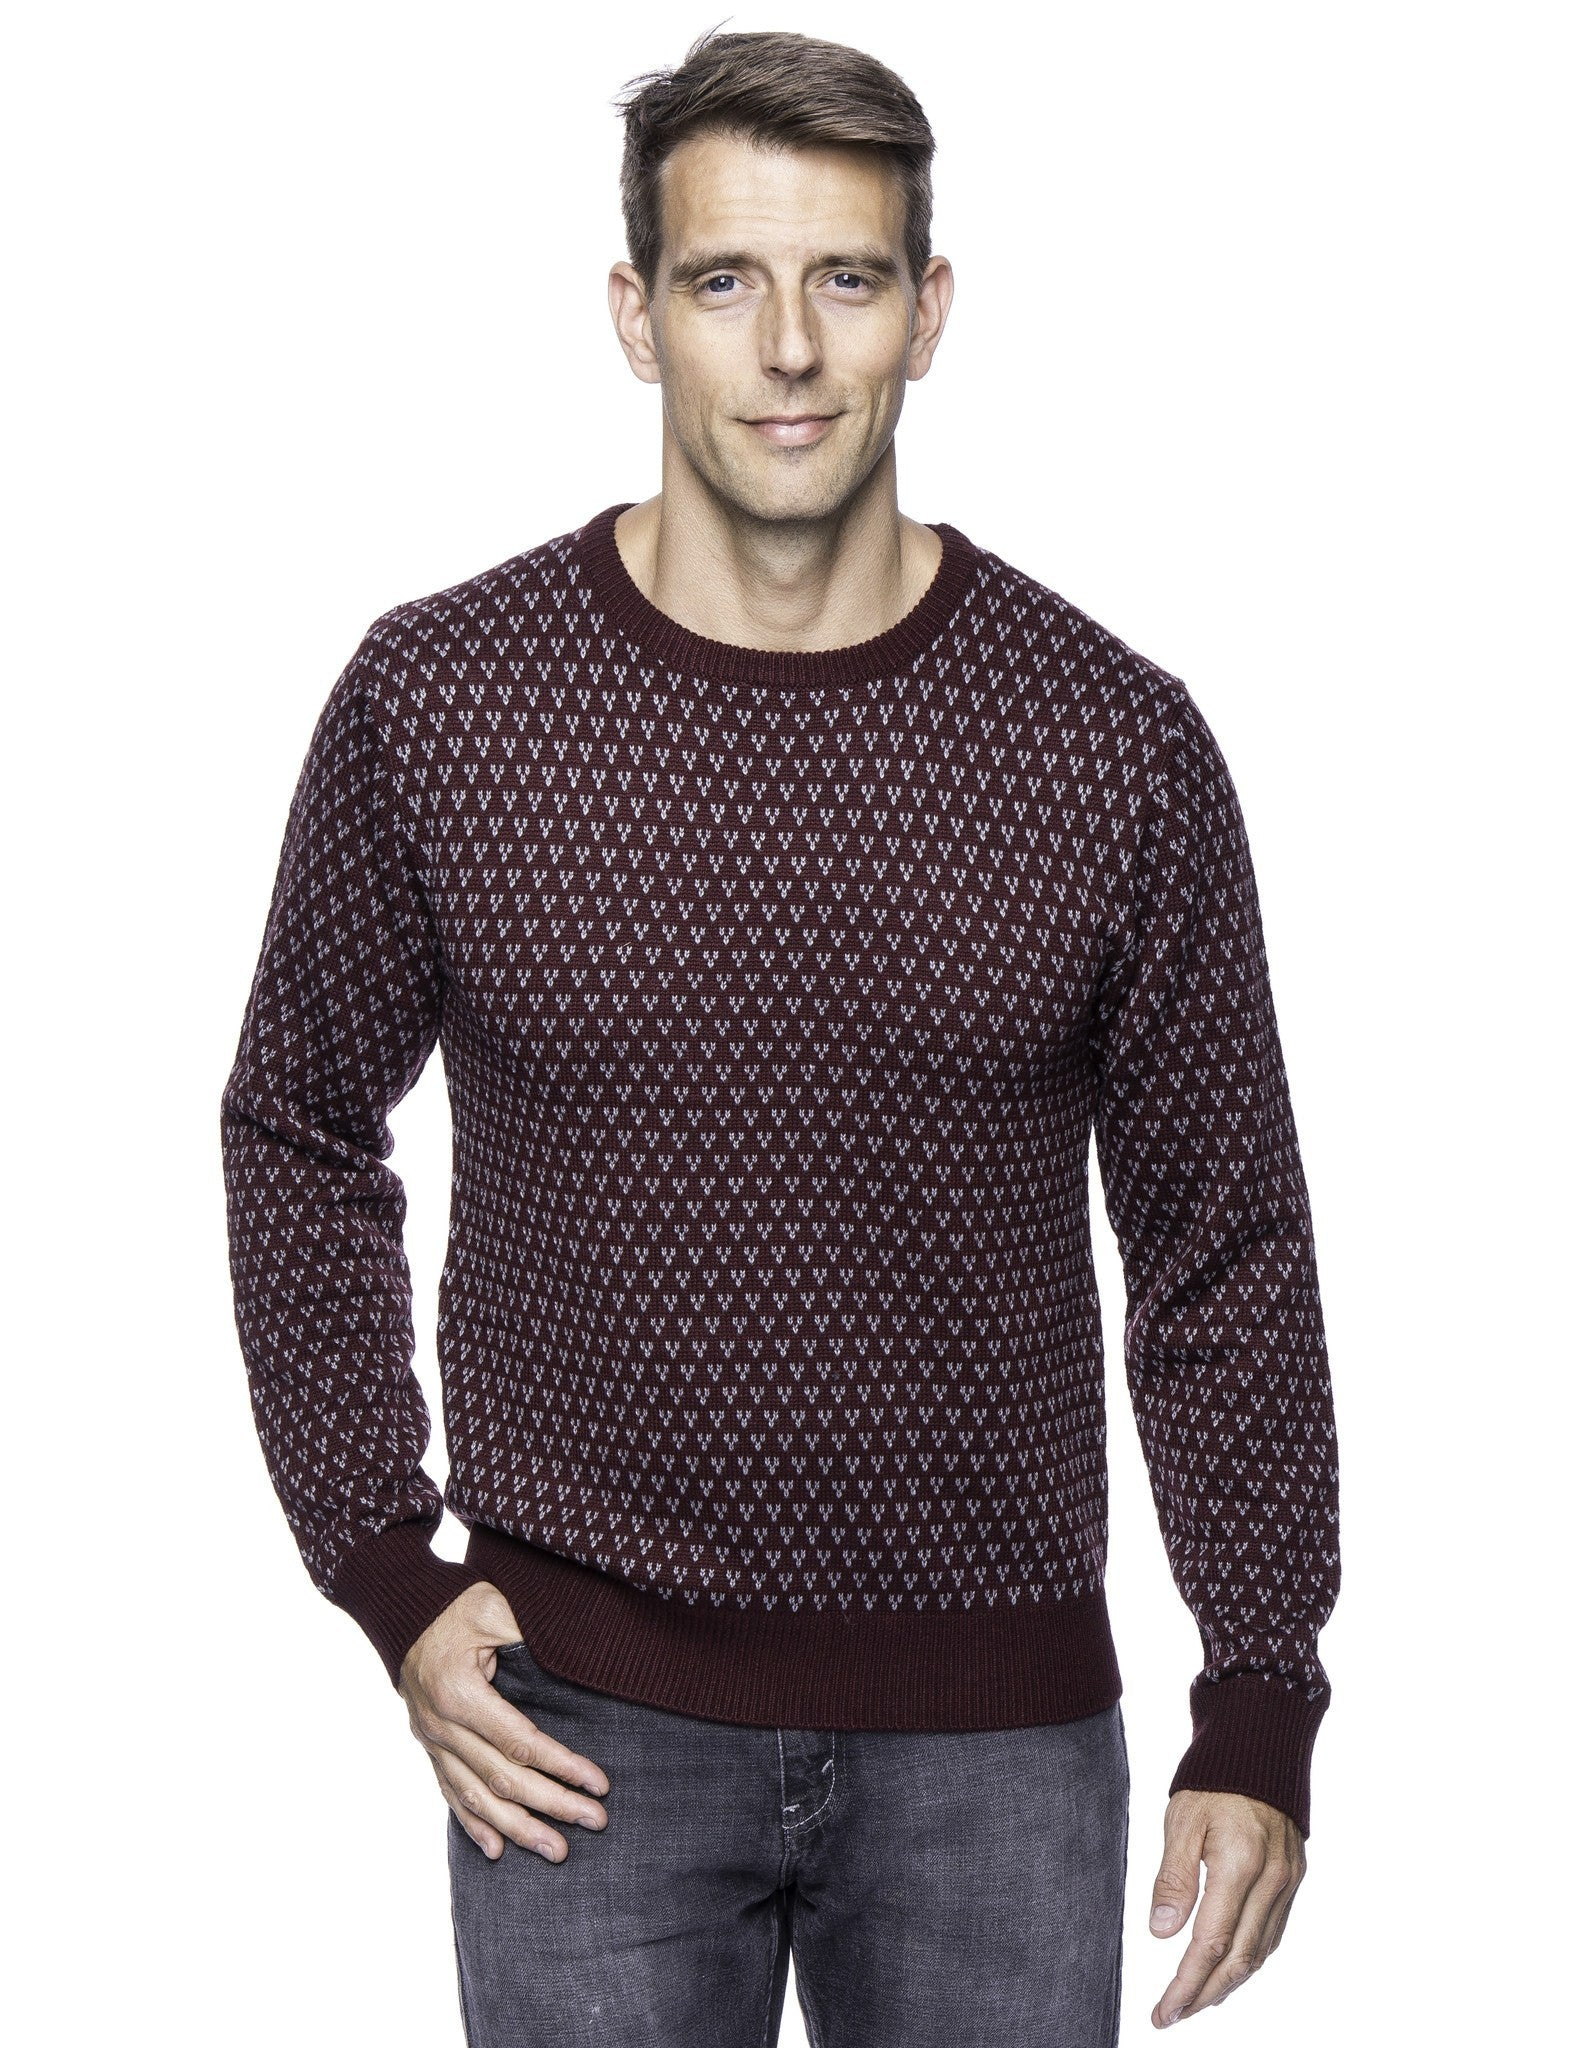 Tocco Reale Men\u0027s Wool Blend Crew Neck Pullover Sweater with Jacquard Effect